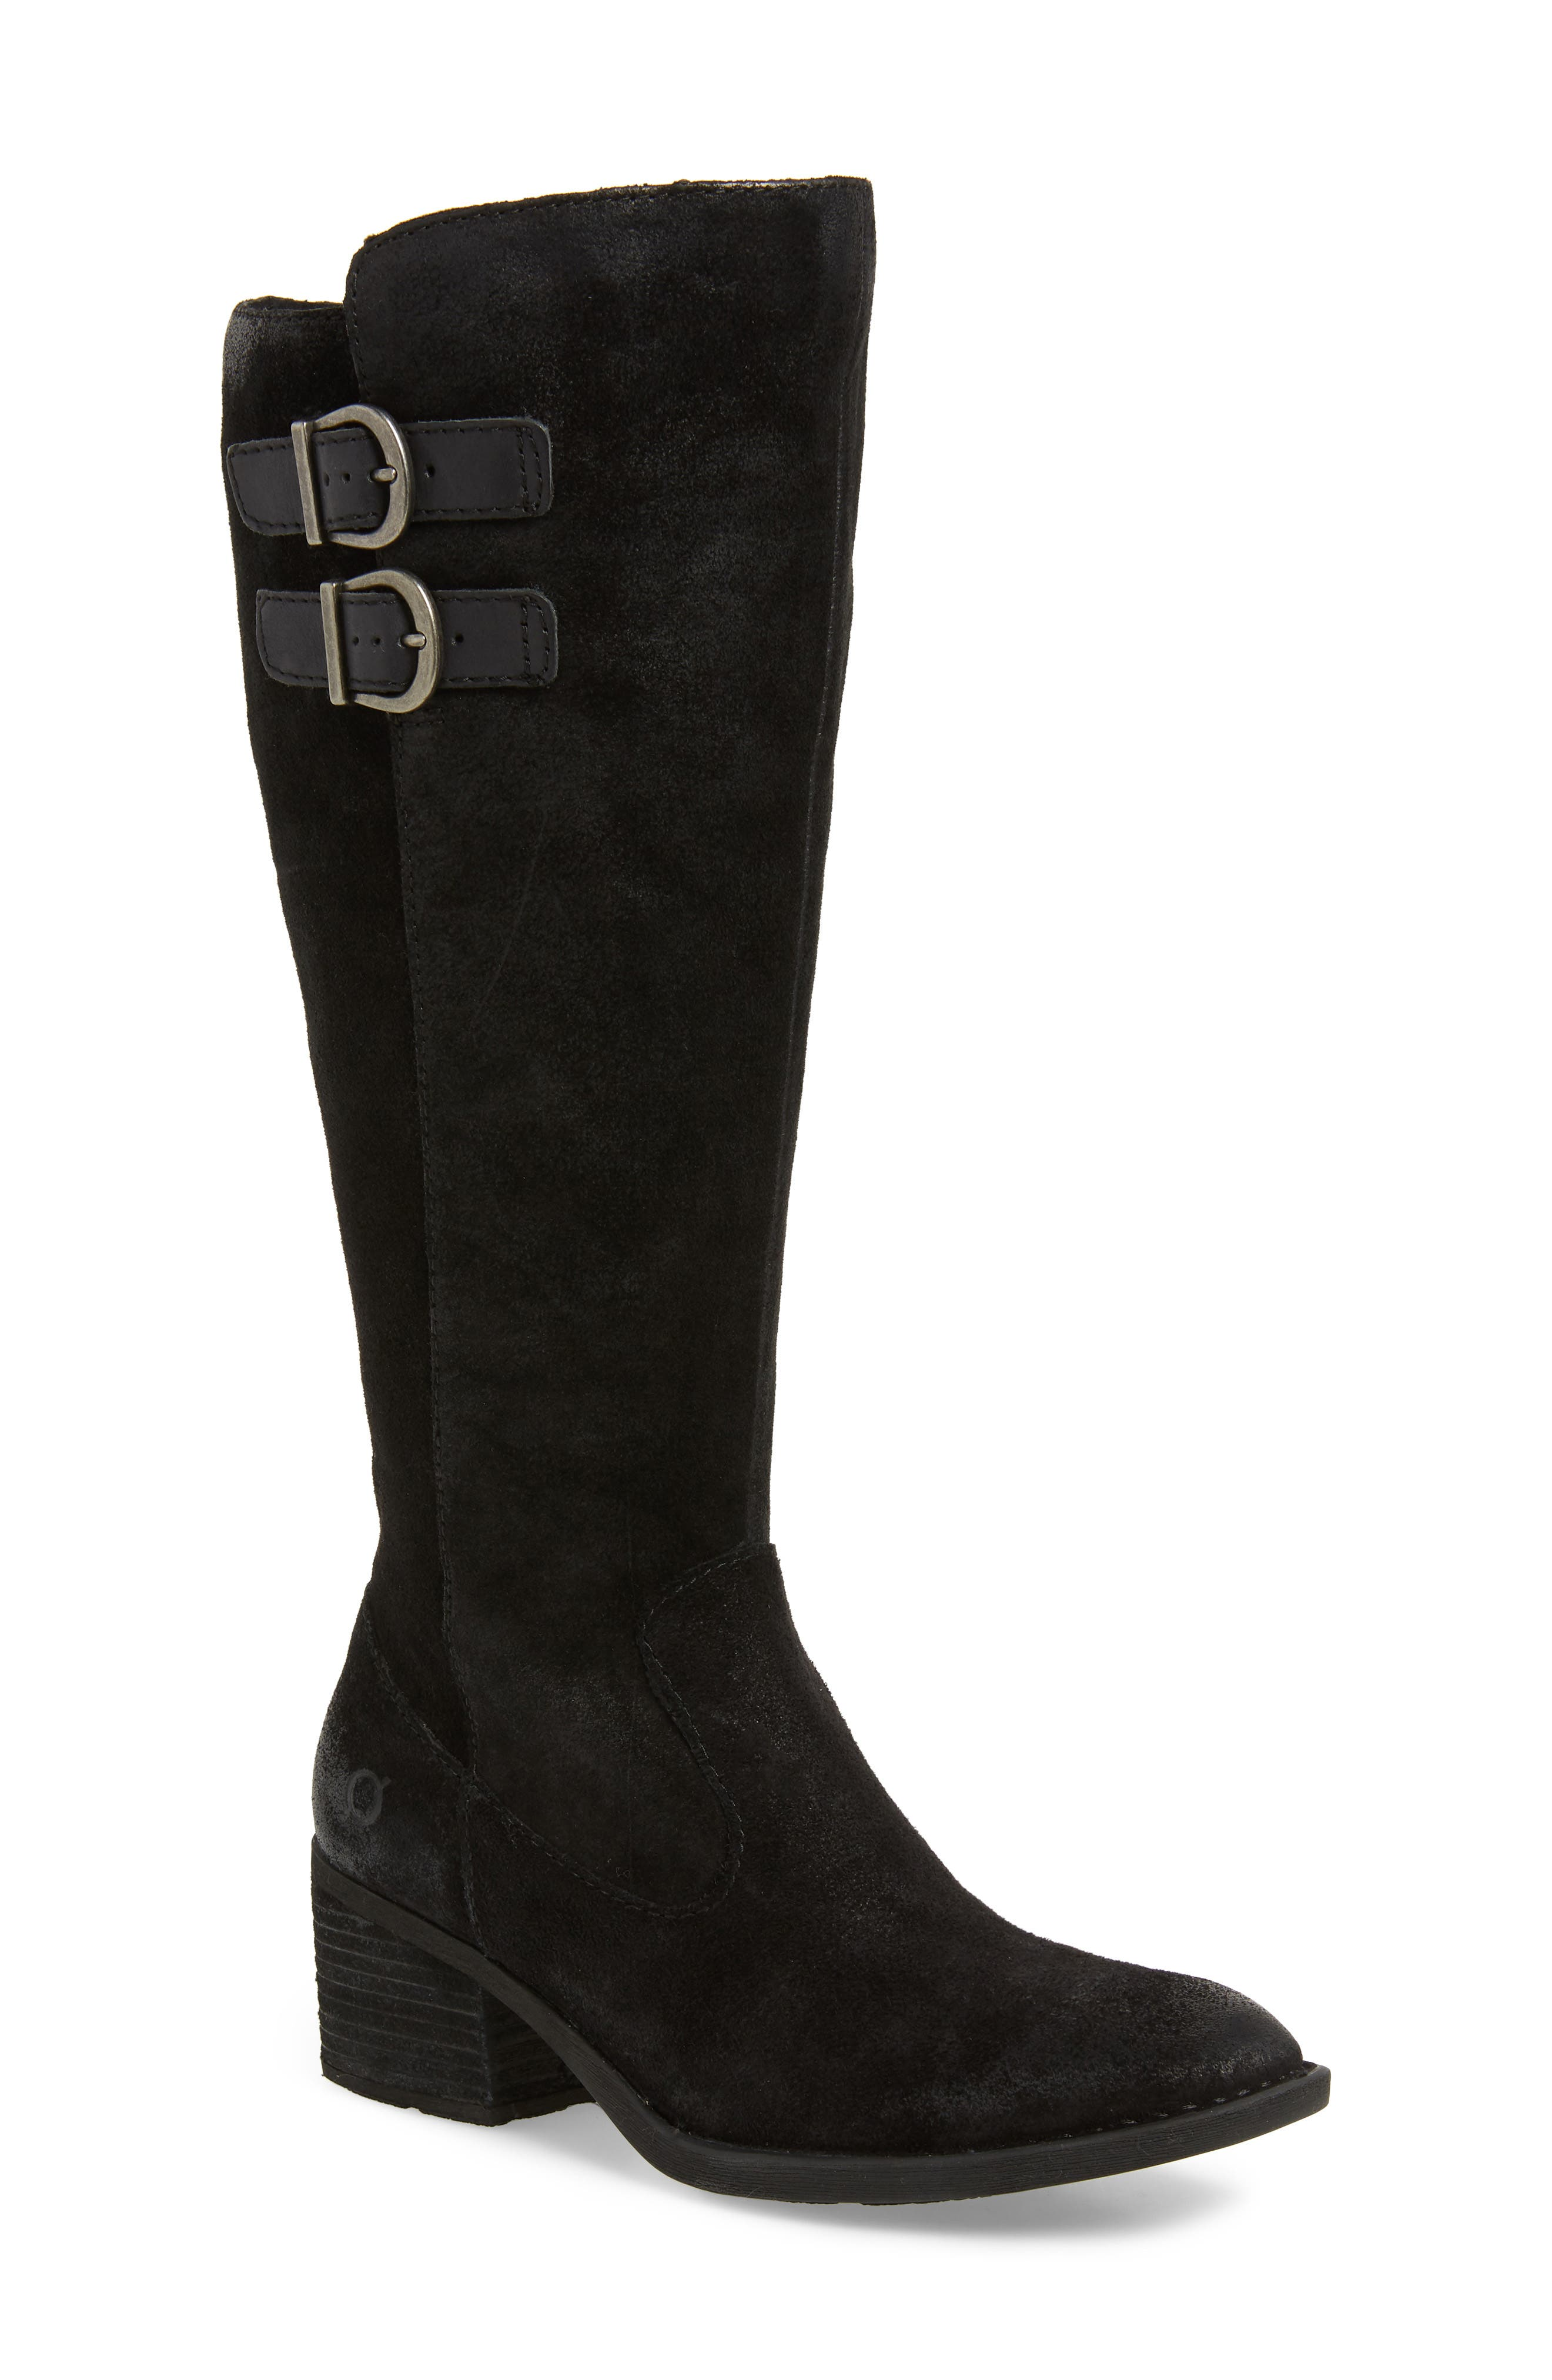 BØRN Basil Knee High Boot, Main, color, BLACK DISTRESSED LEATHER